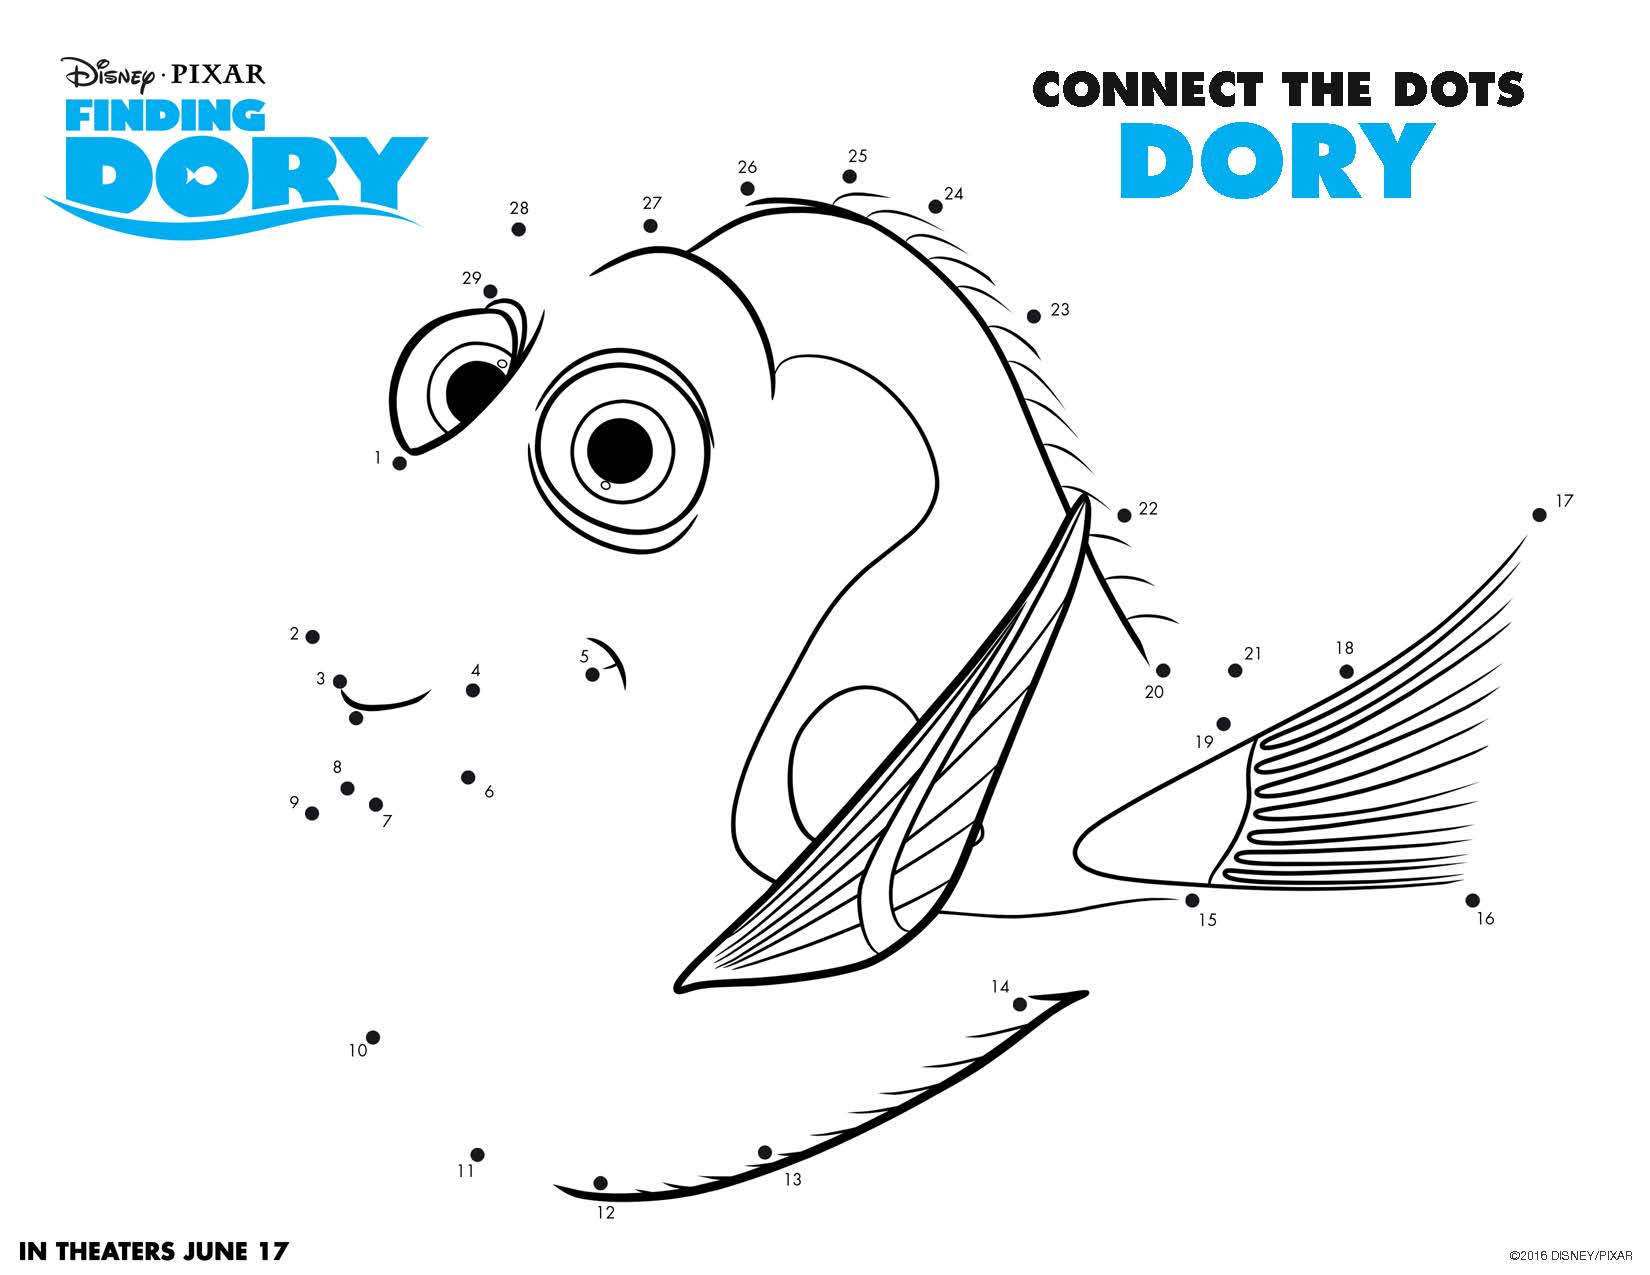 finding dory movie printable connect the dots printable activity sheet for kids